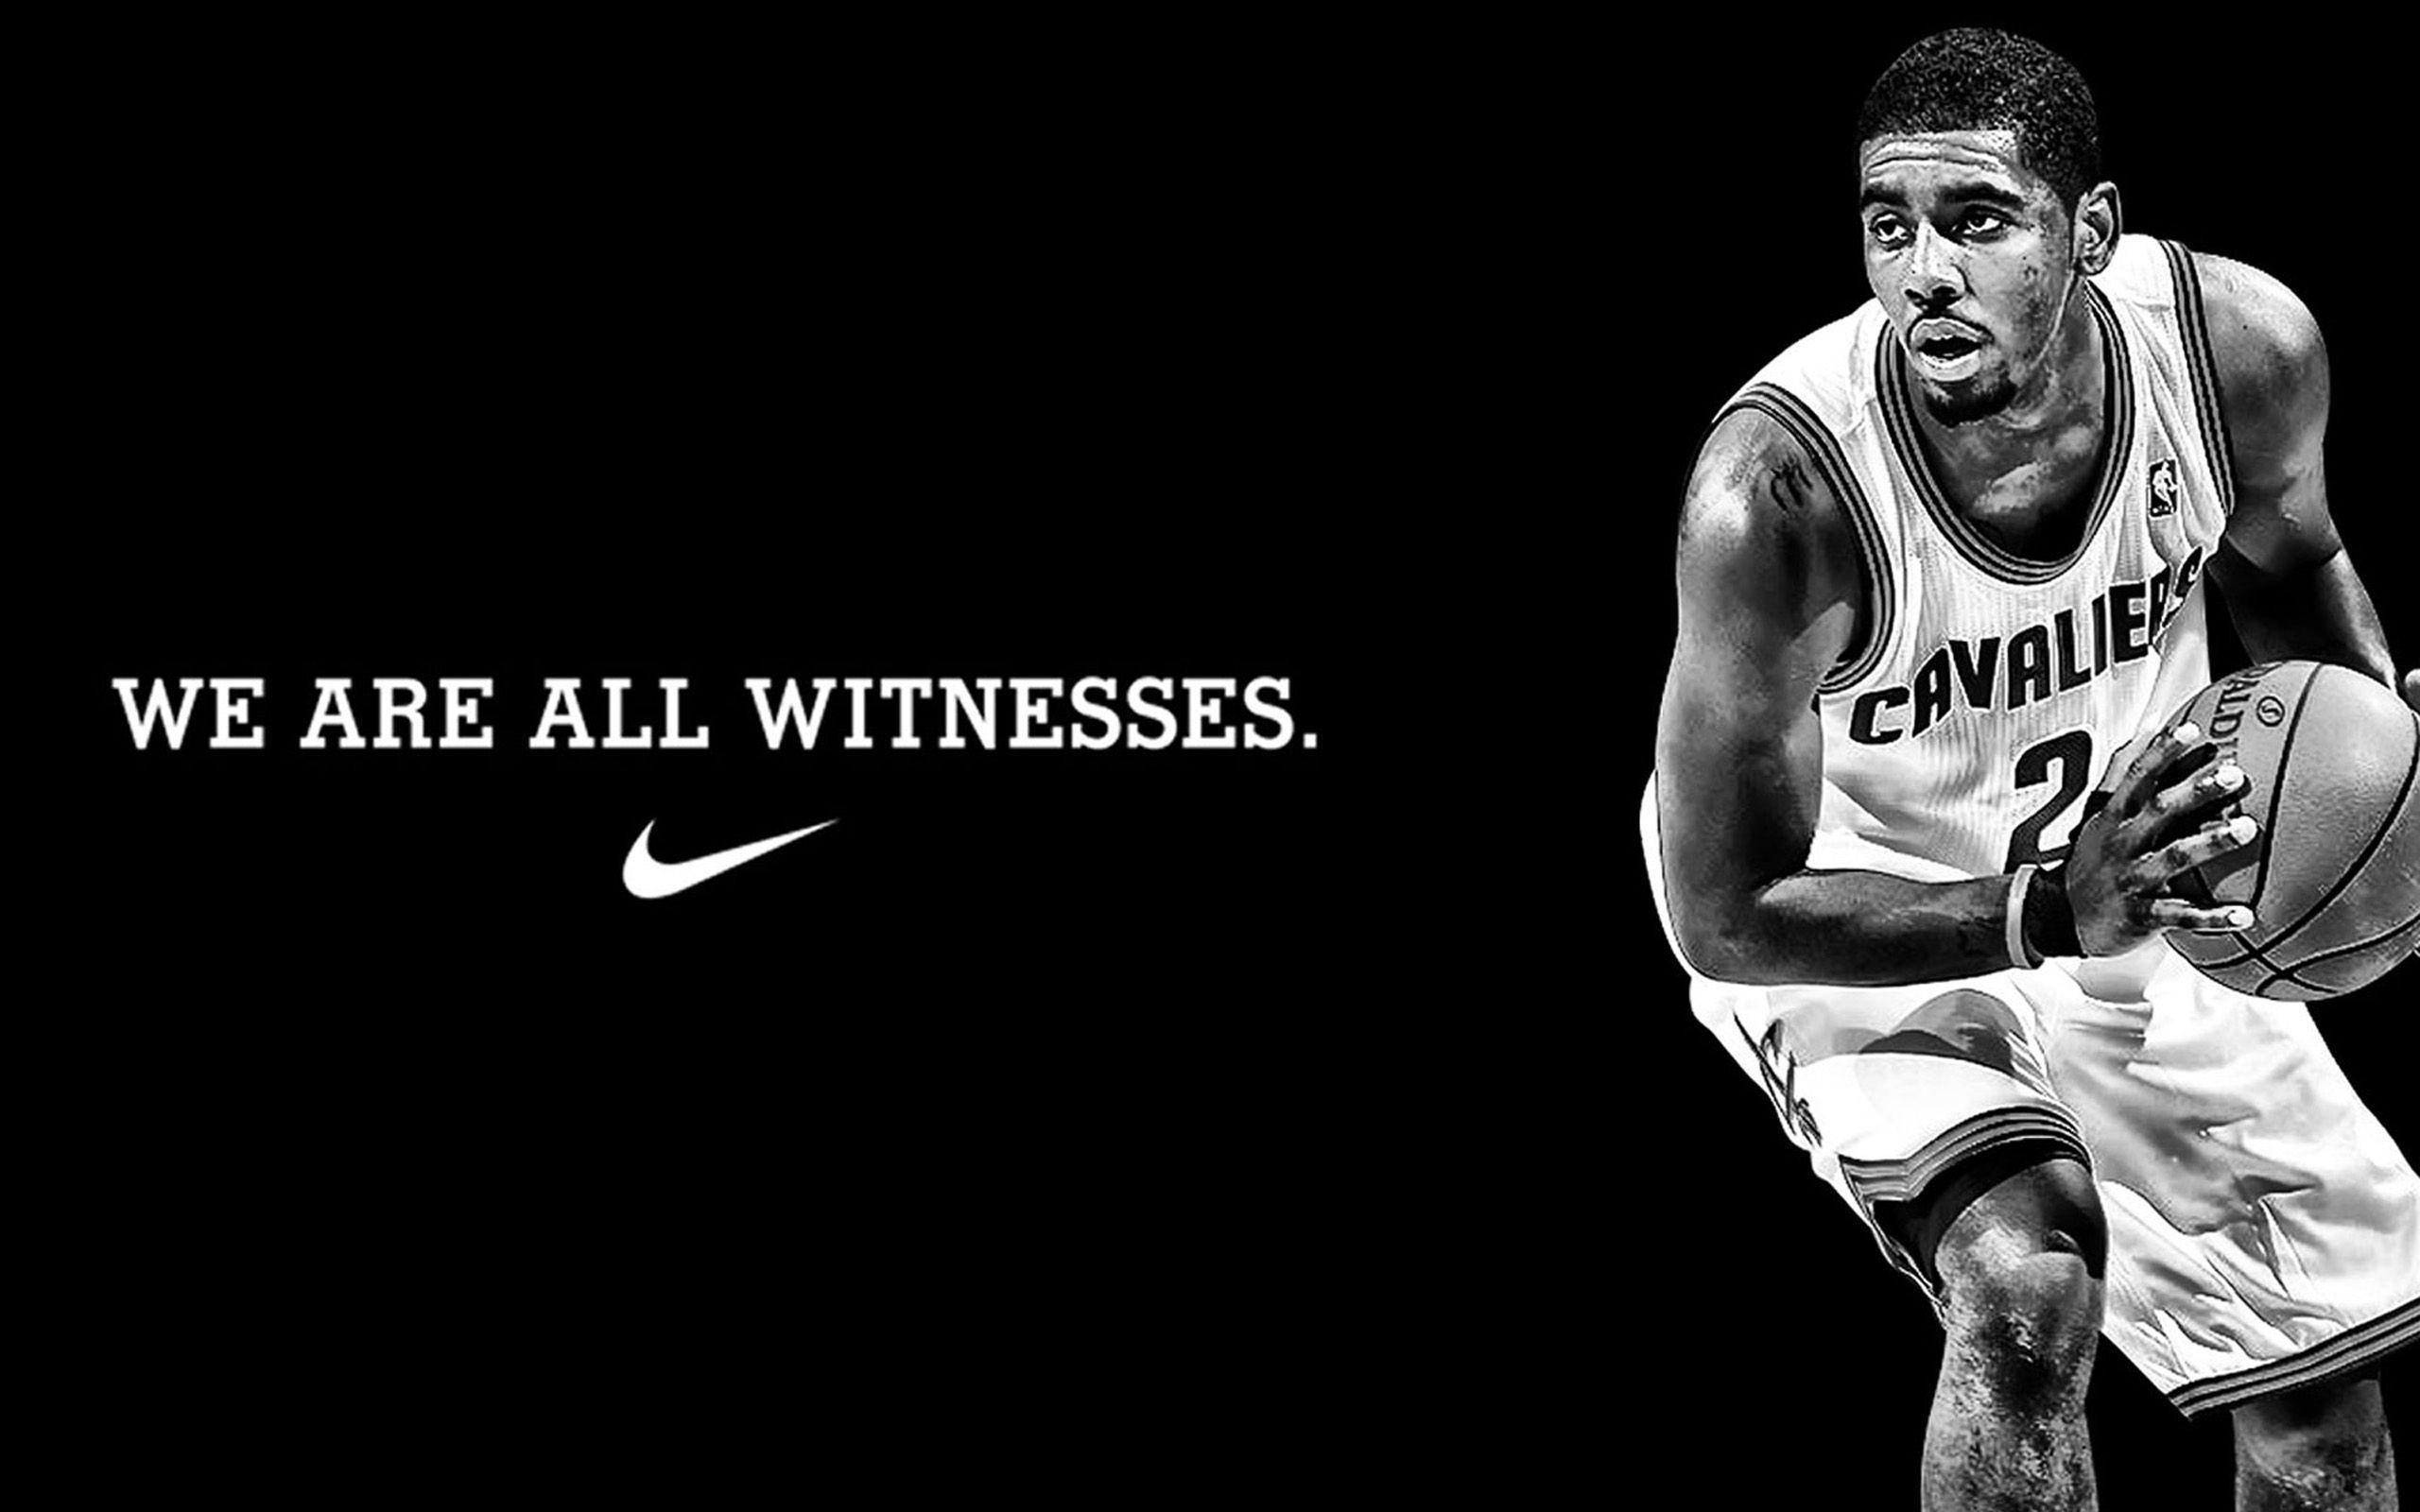 Nike Wallpaper Basketball 59 Images